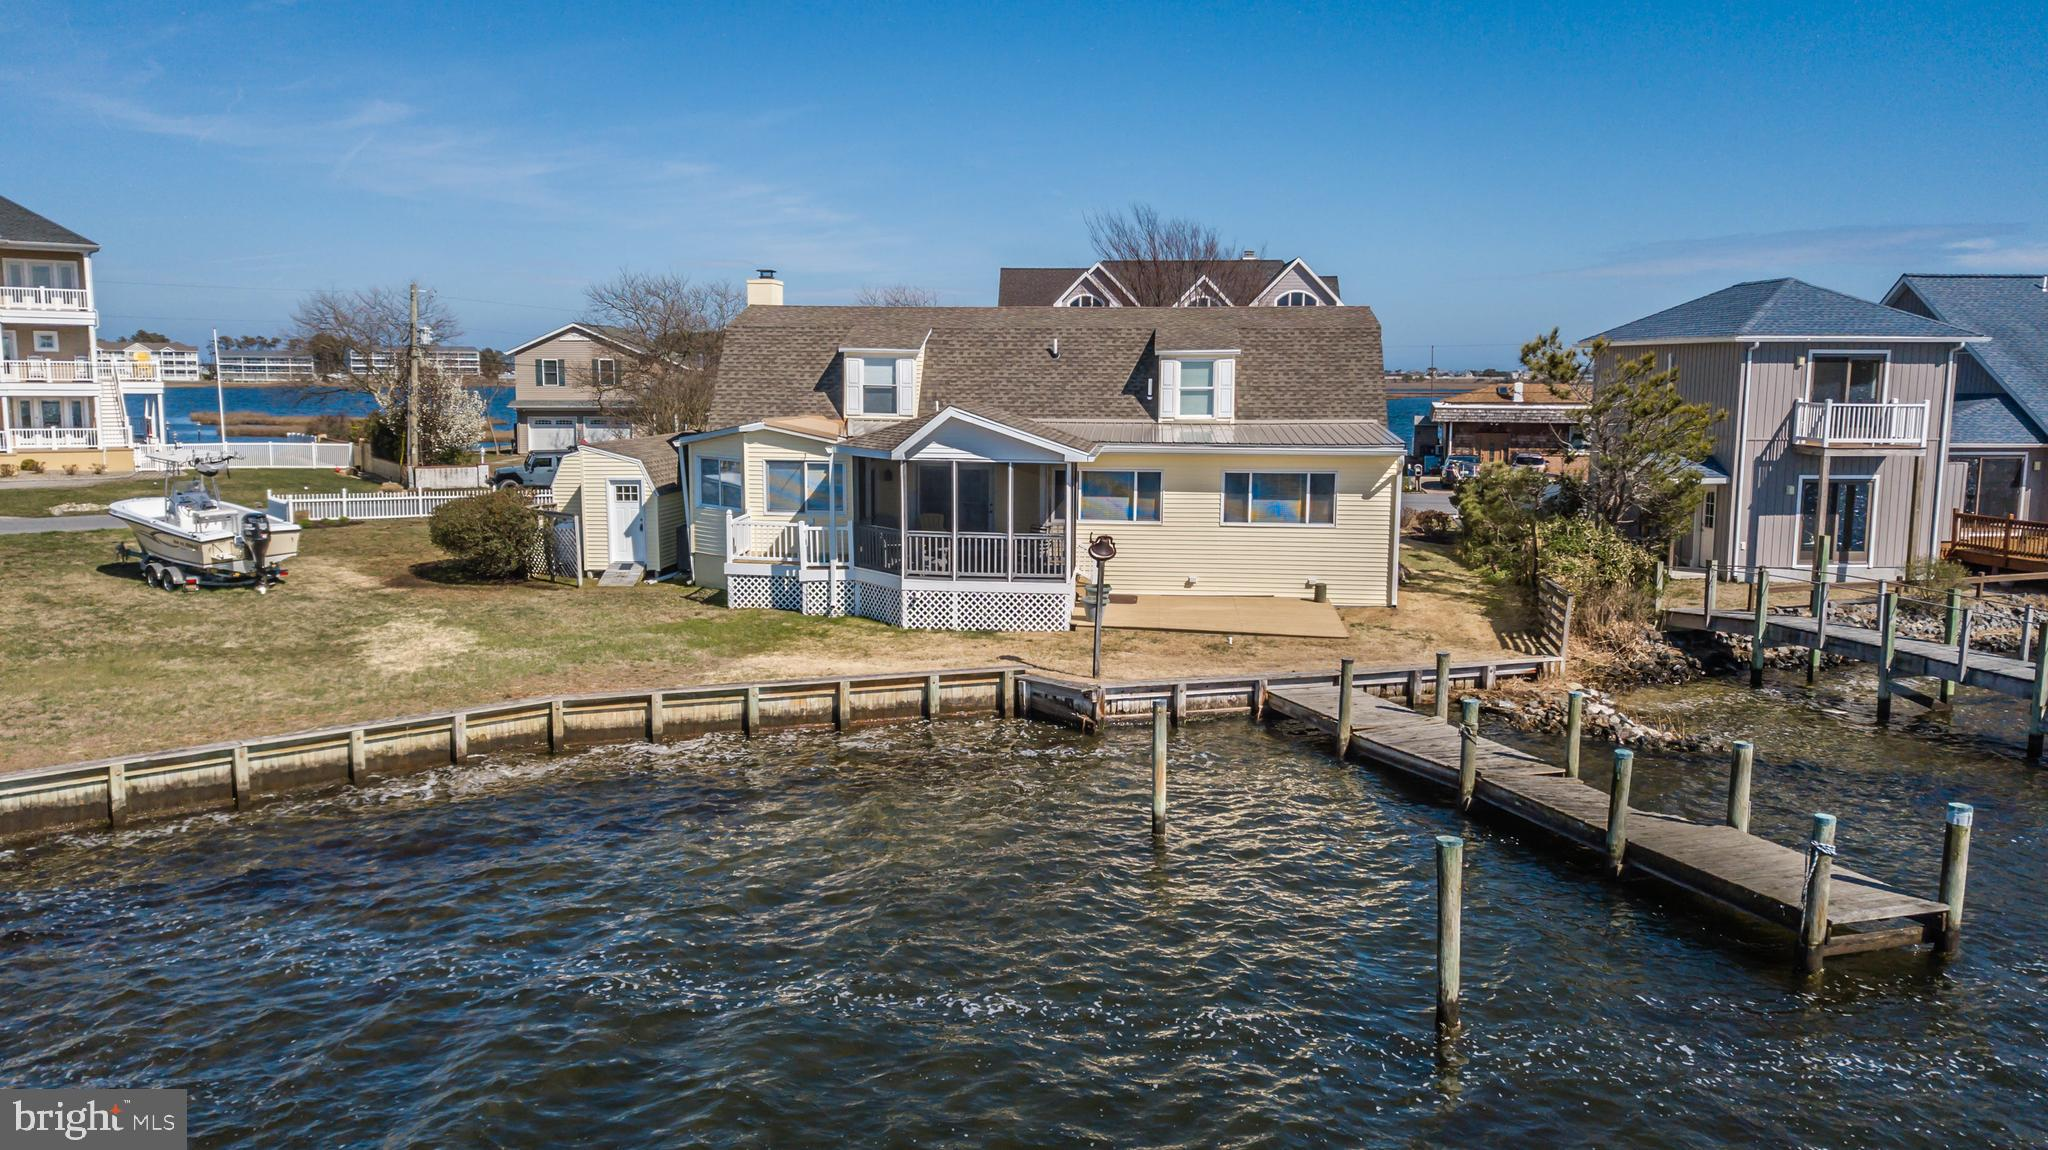 Bayfront! Beautiful Bayfront 4-bedroom, 4 bath home with expansive views over the bay. This newly renovated (2018-2019) home features living room with fireplace, kitchen with granite counter tops, stainless steel appliances, island and adjoining dining room that leads to the Bayfront all-season sunroom/family room with more area to dine. Includes screened-in porch and deck all overlooking the bay. Massive first floor master suite with a lovely tiled bath & double sink vanity. Guest bedrooms include one on the first floor and two en suite on the second level. Plenty of storage with garage style shed, backyard with private boat pier for boating, crabbing, fishing and just 2.5 miles to Fenwick & Ocean City Beaches